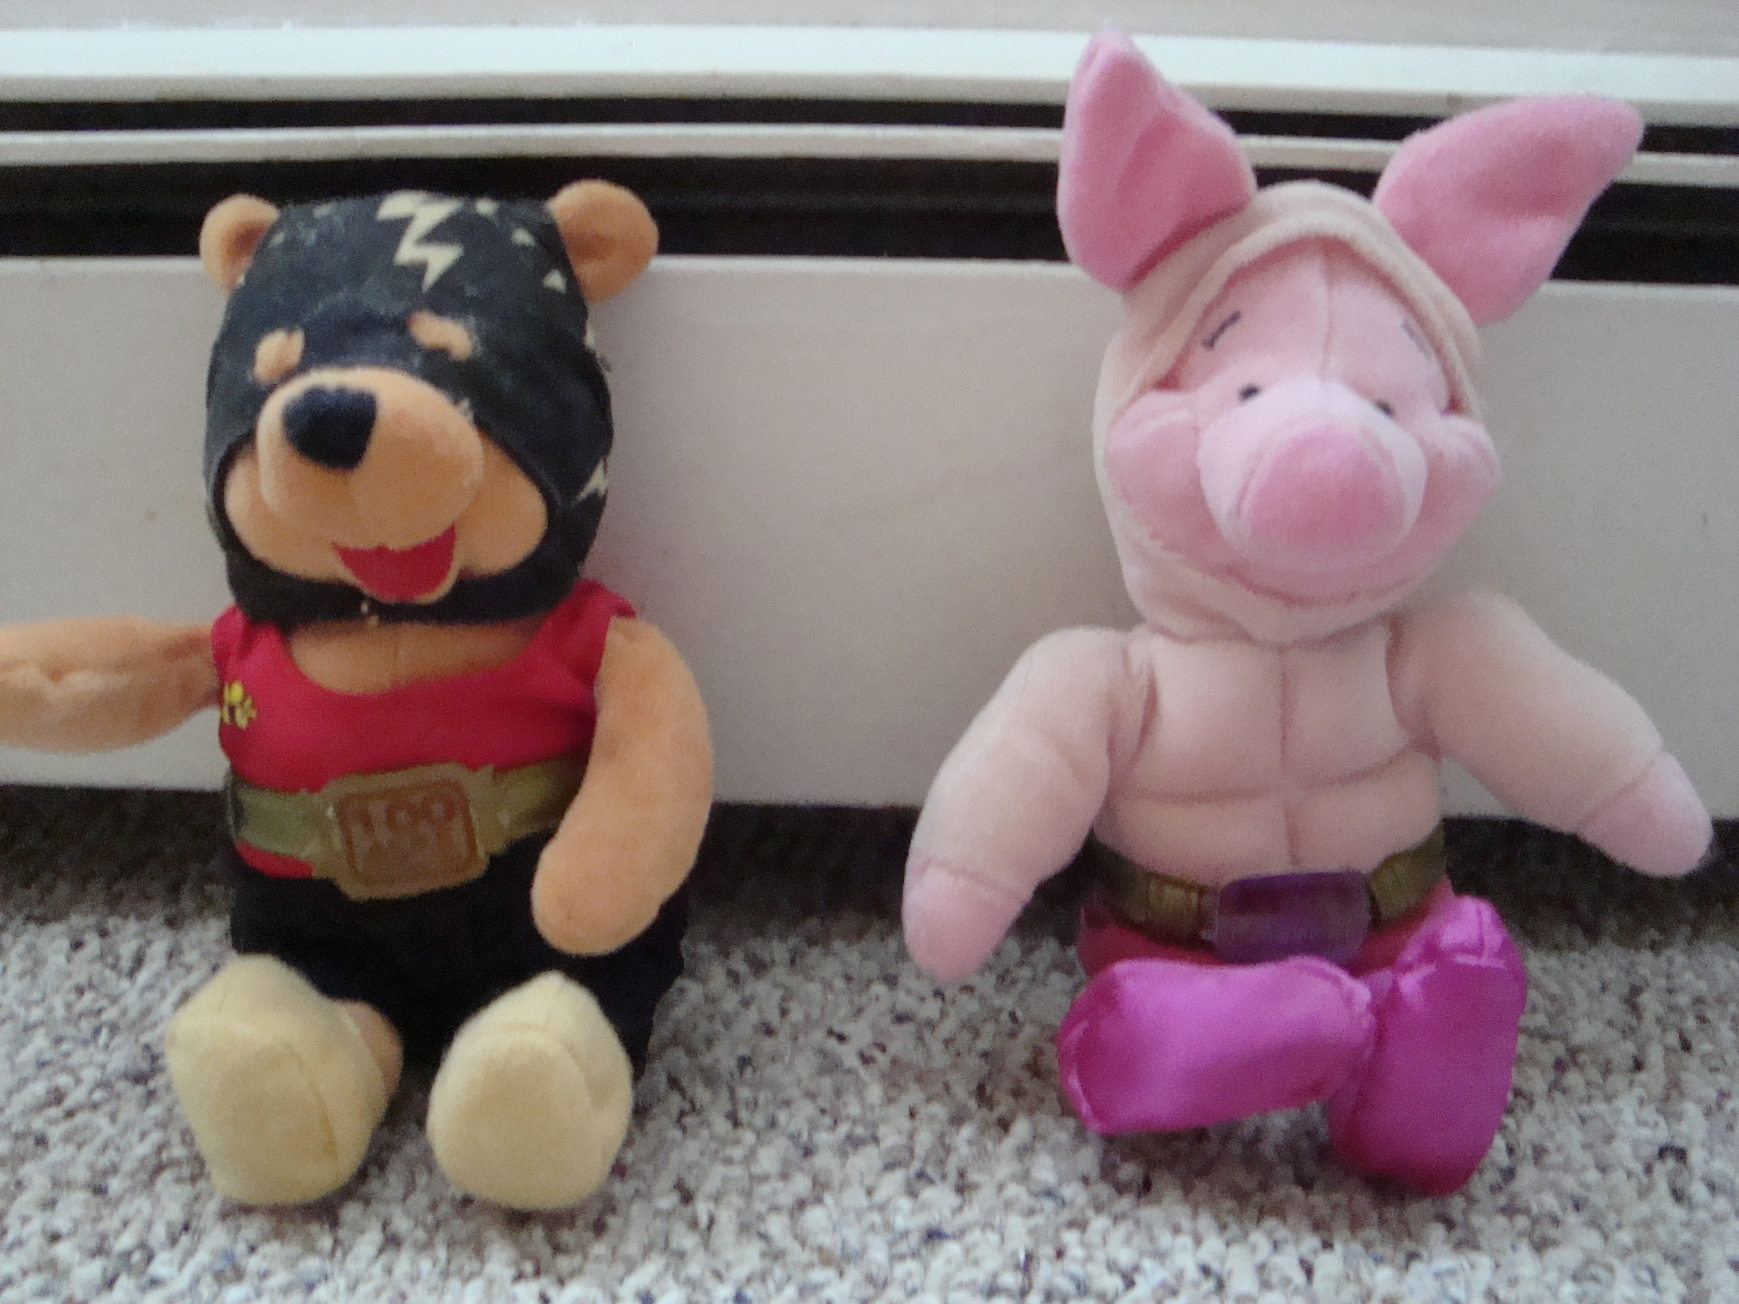 Winnie The Pooh And Piglet wrestlers plush toys